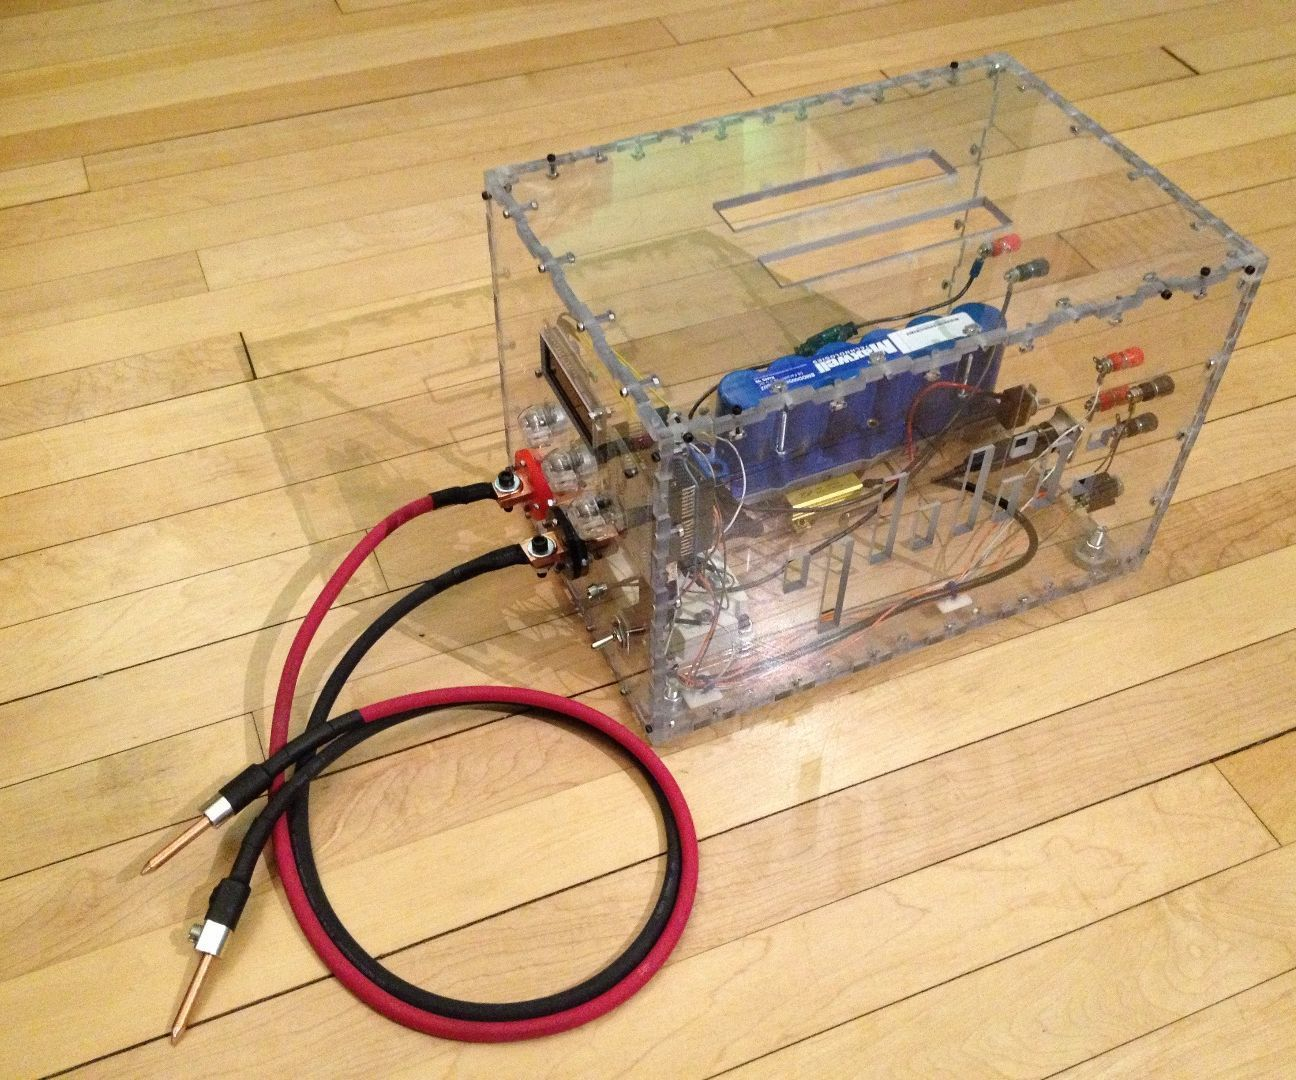 hight resolution of this instructables includes plans to build a dual pulse capacitive discharge spot welder that can output 400 amps in 60 micro seconds